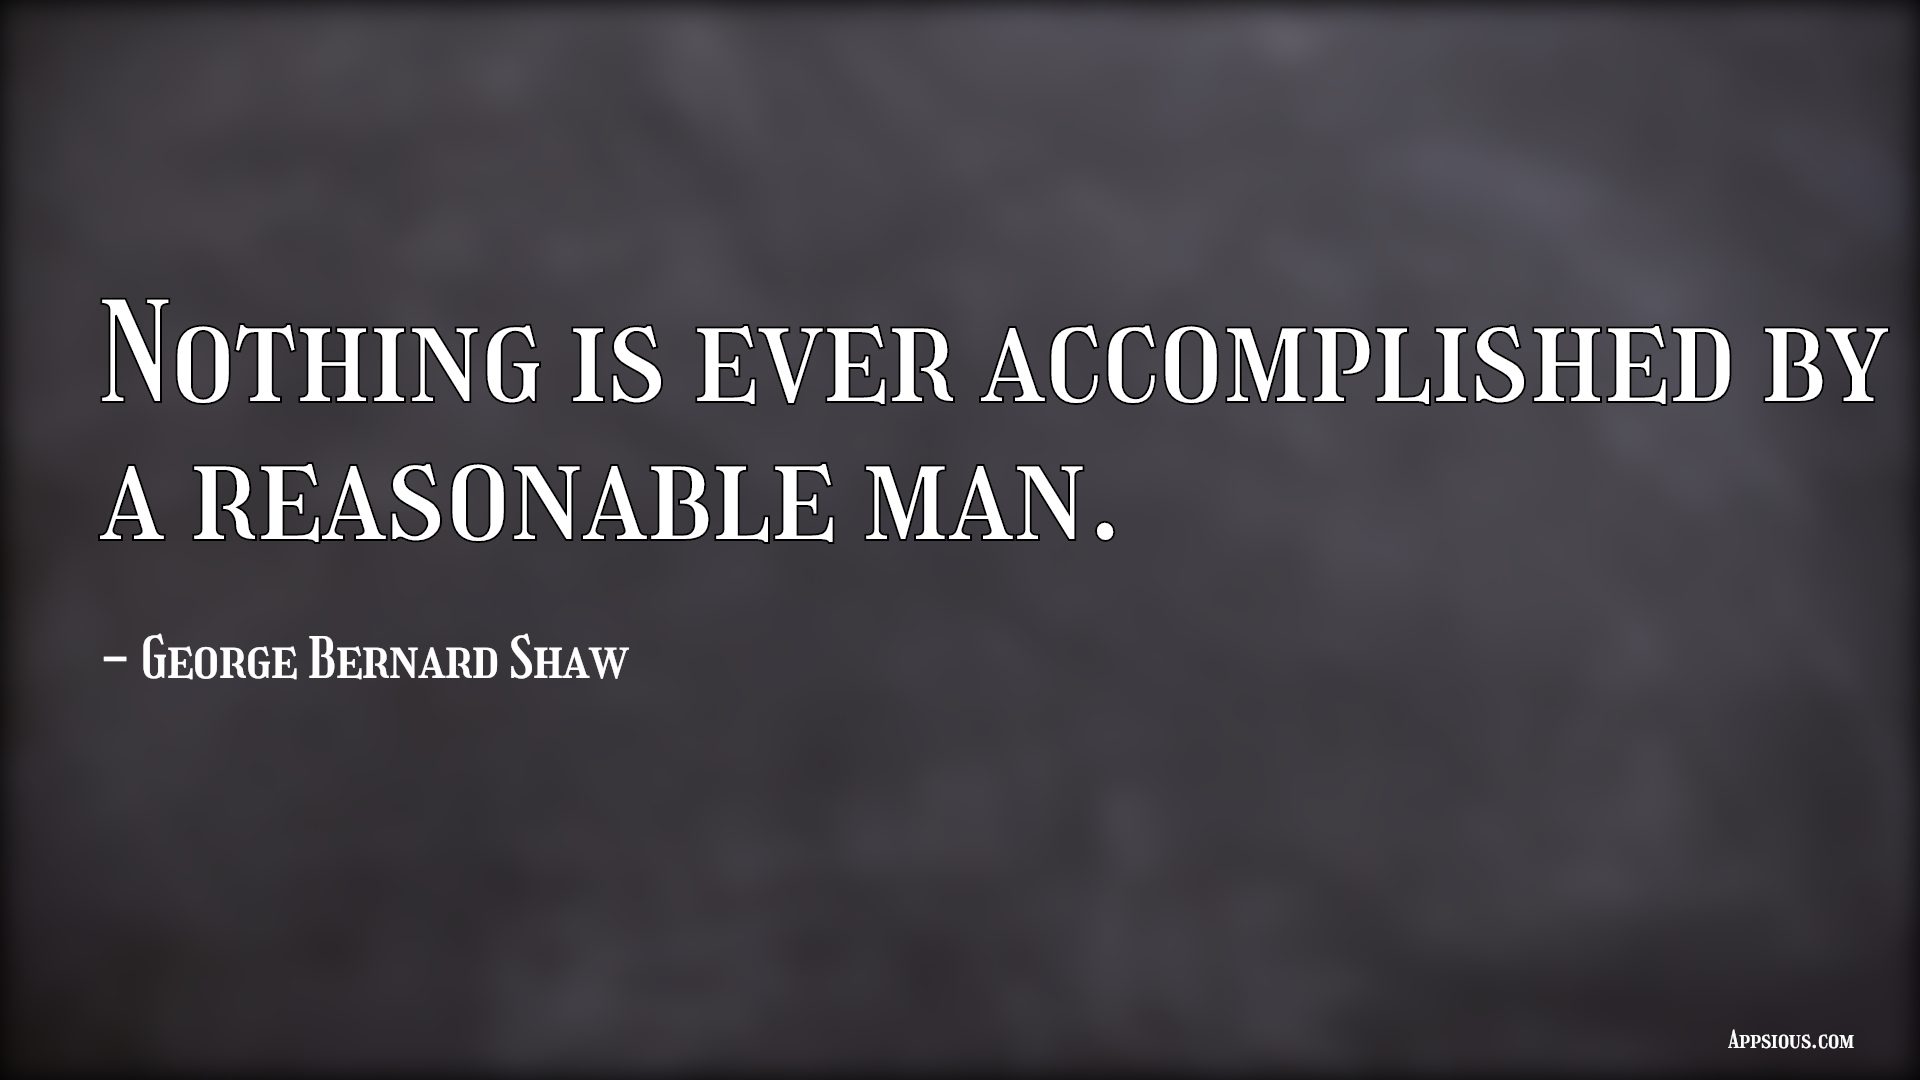 Nothing is ever accomplished by a reasonable man.